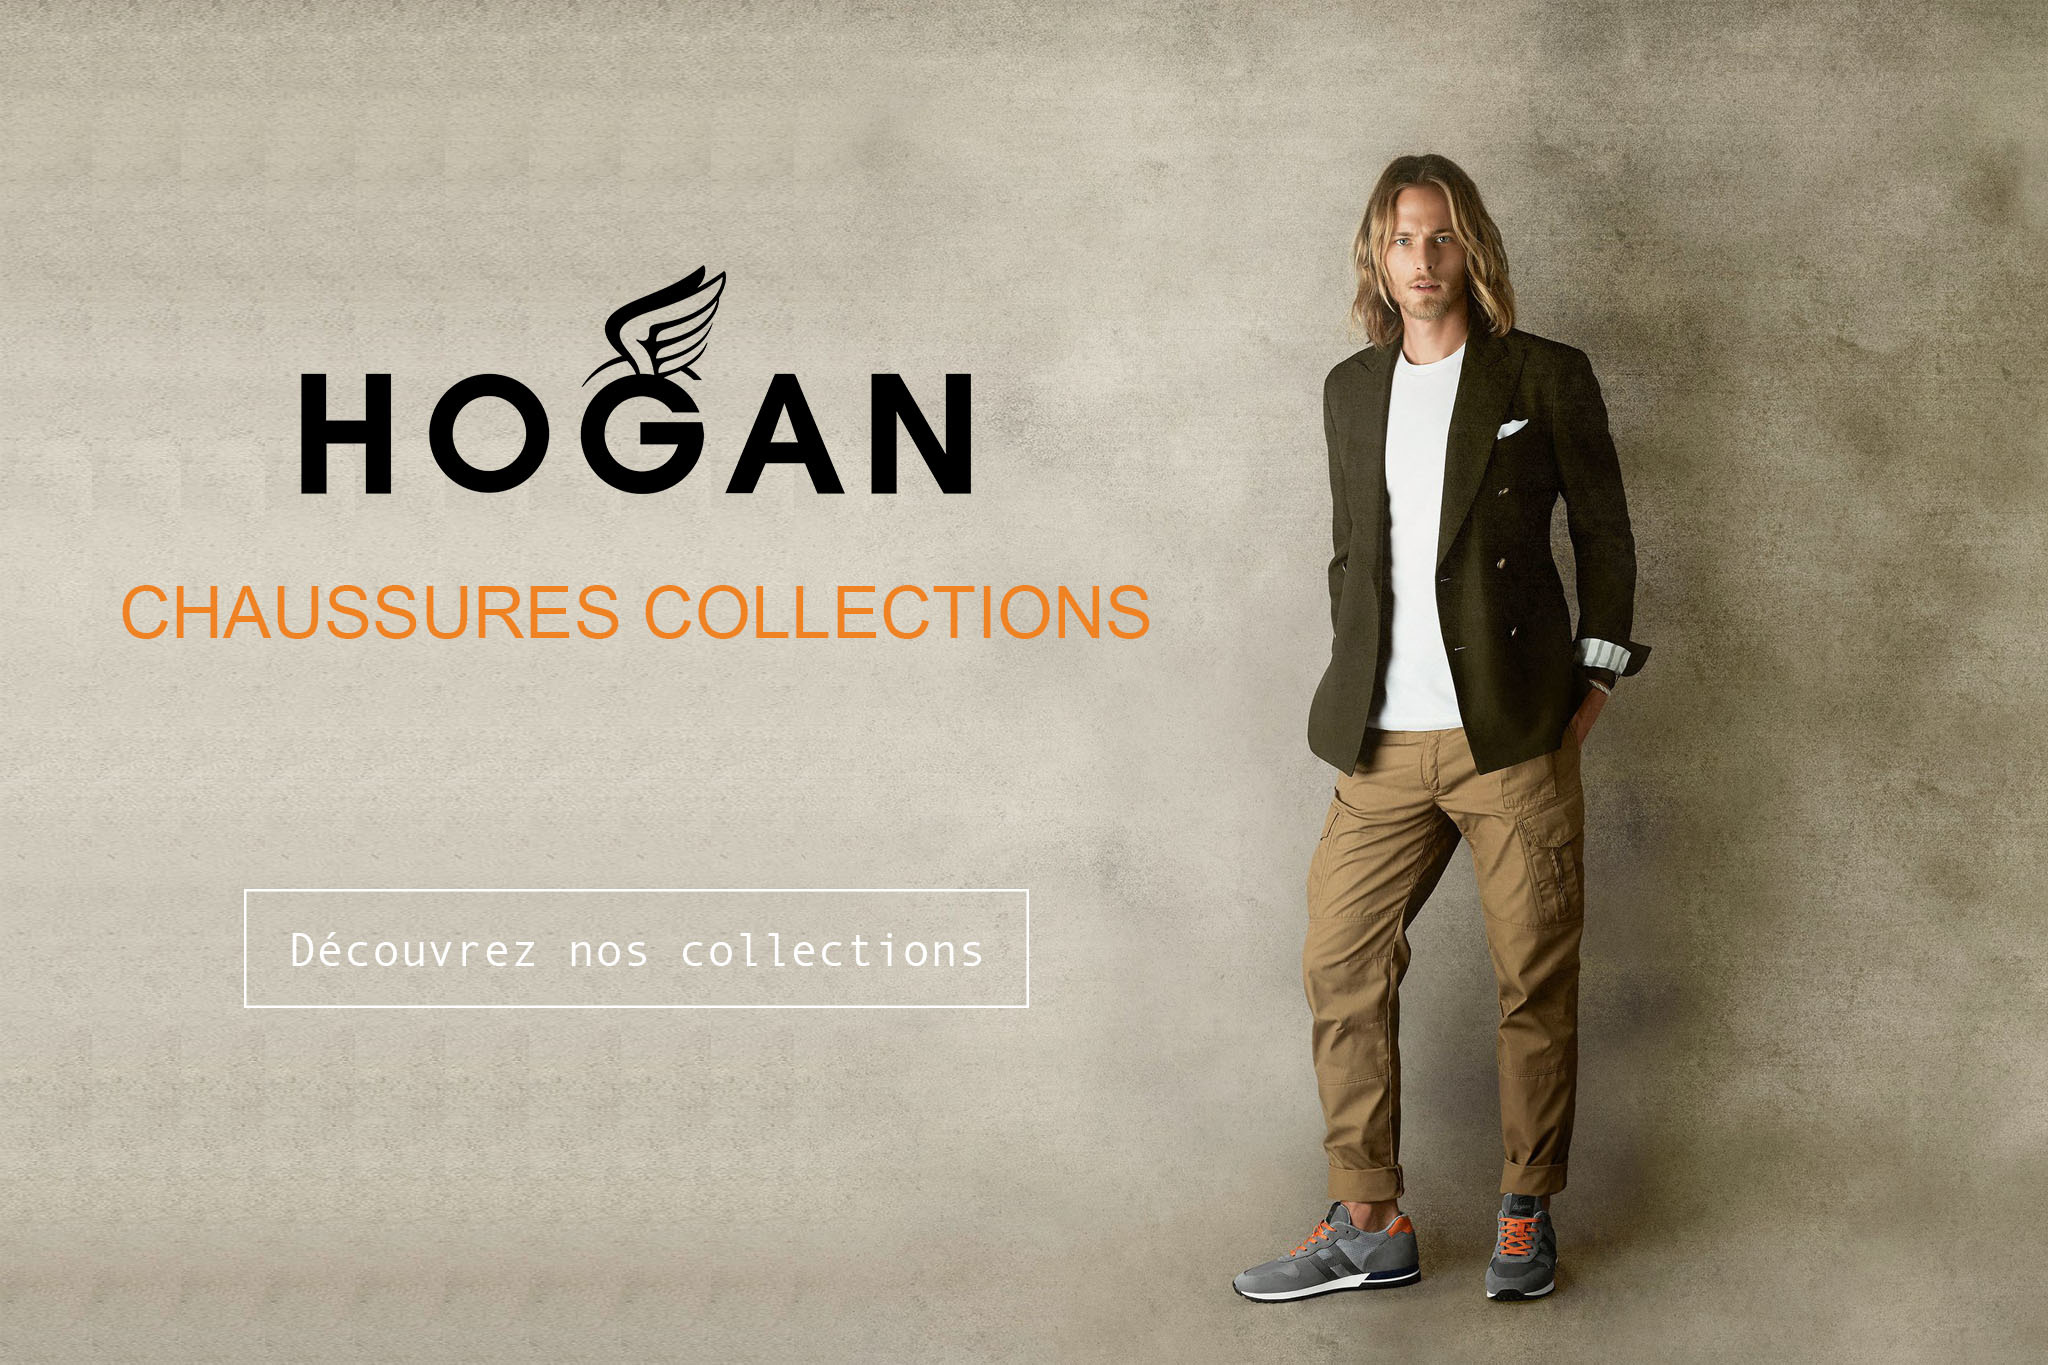 HOGAN Chaussures Collections